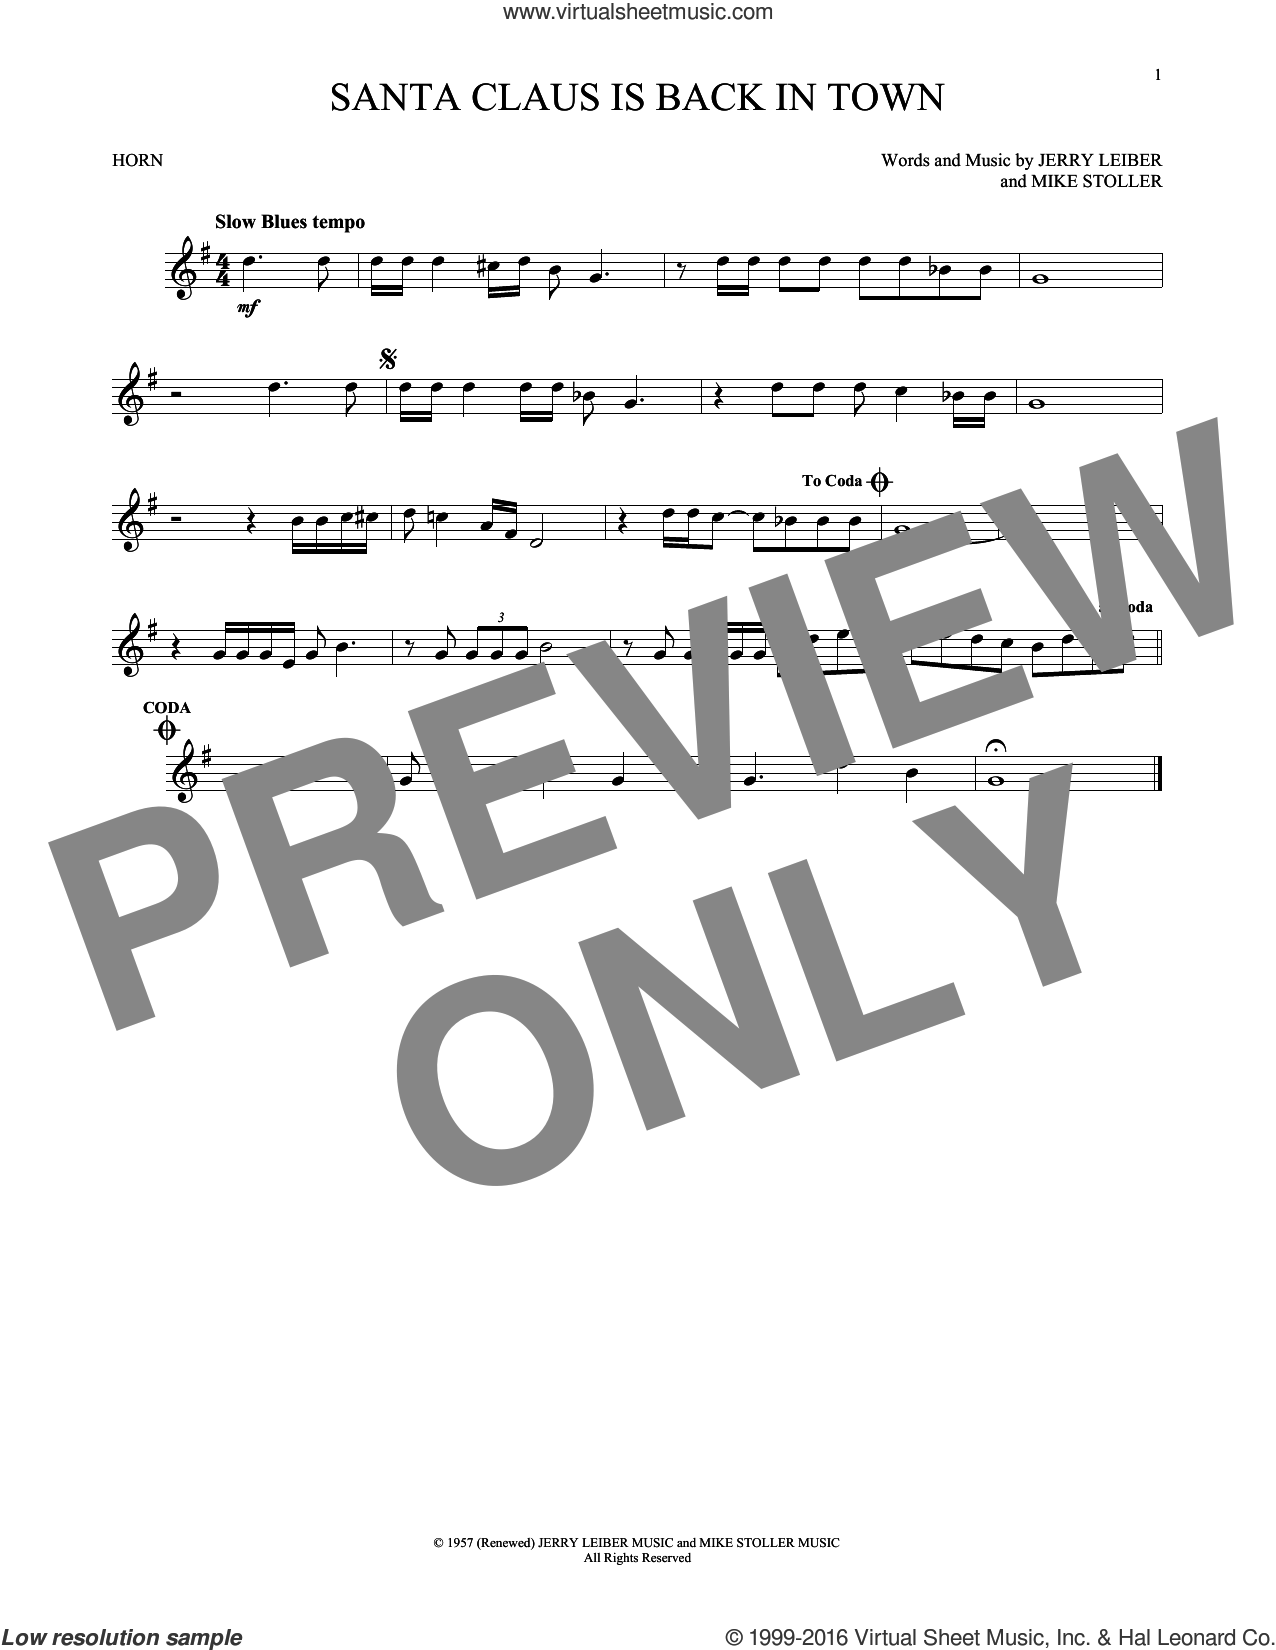 Santa Claus Is Back In Town sheet music for horn solo by Elvis Presley and Mike Stoller, Christmas carol score, intermediate horn. Score Image Preview.